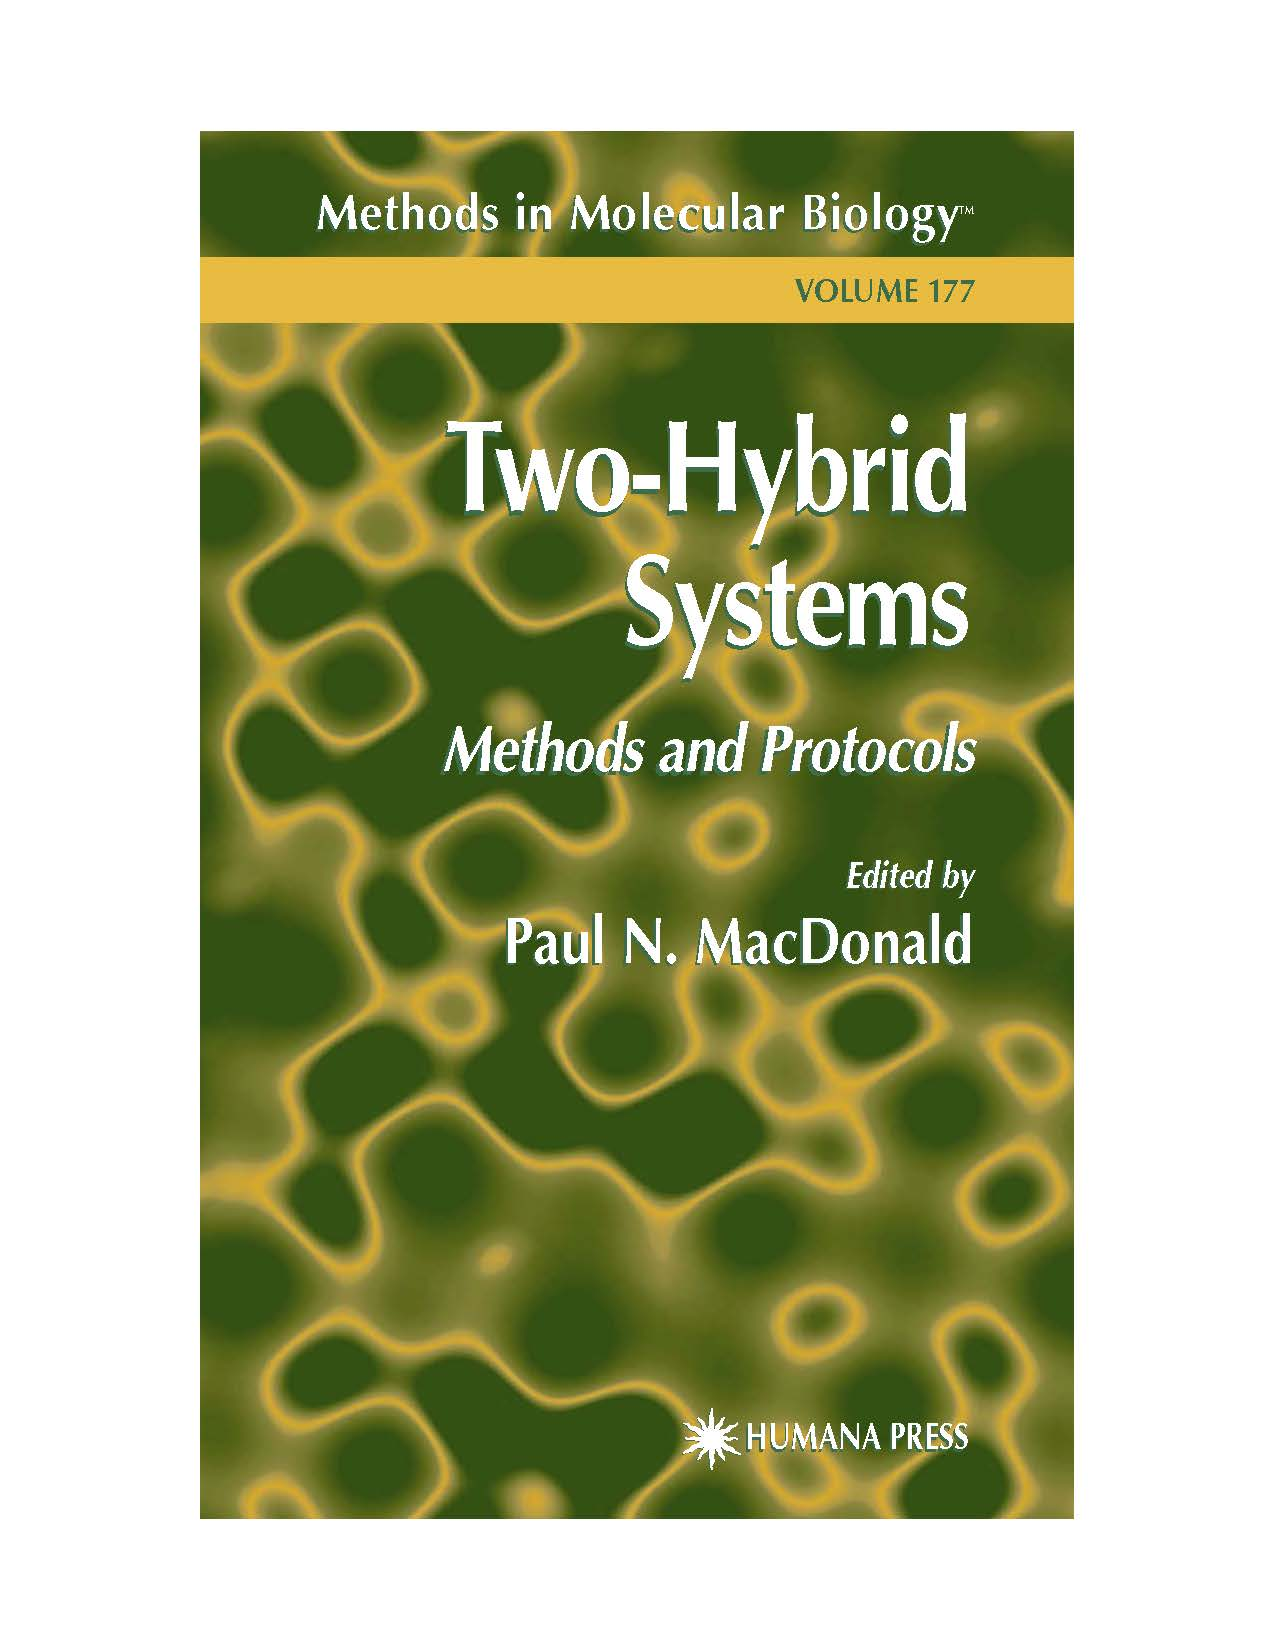 Methods in Molecular Biology VOLUME 177 Two-Hybrid Systems Methods and Protocols